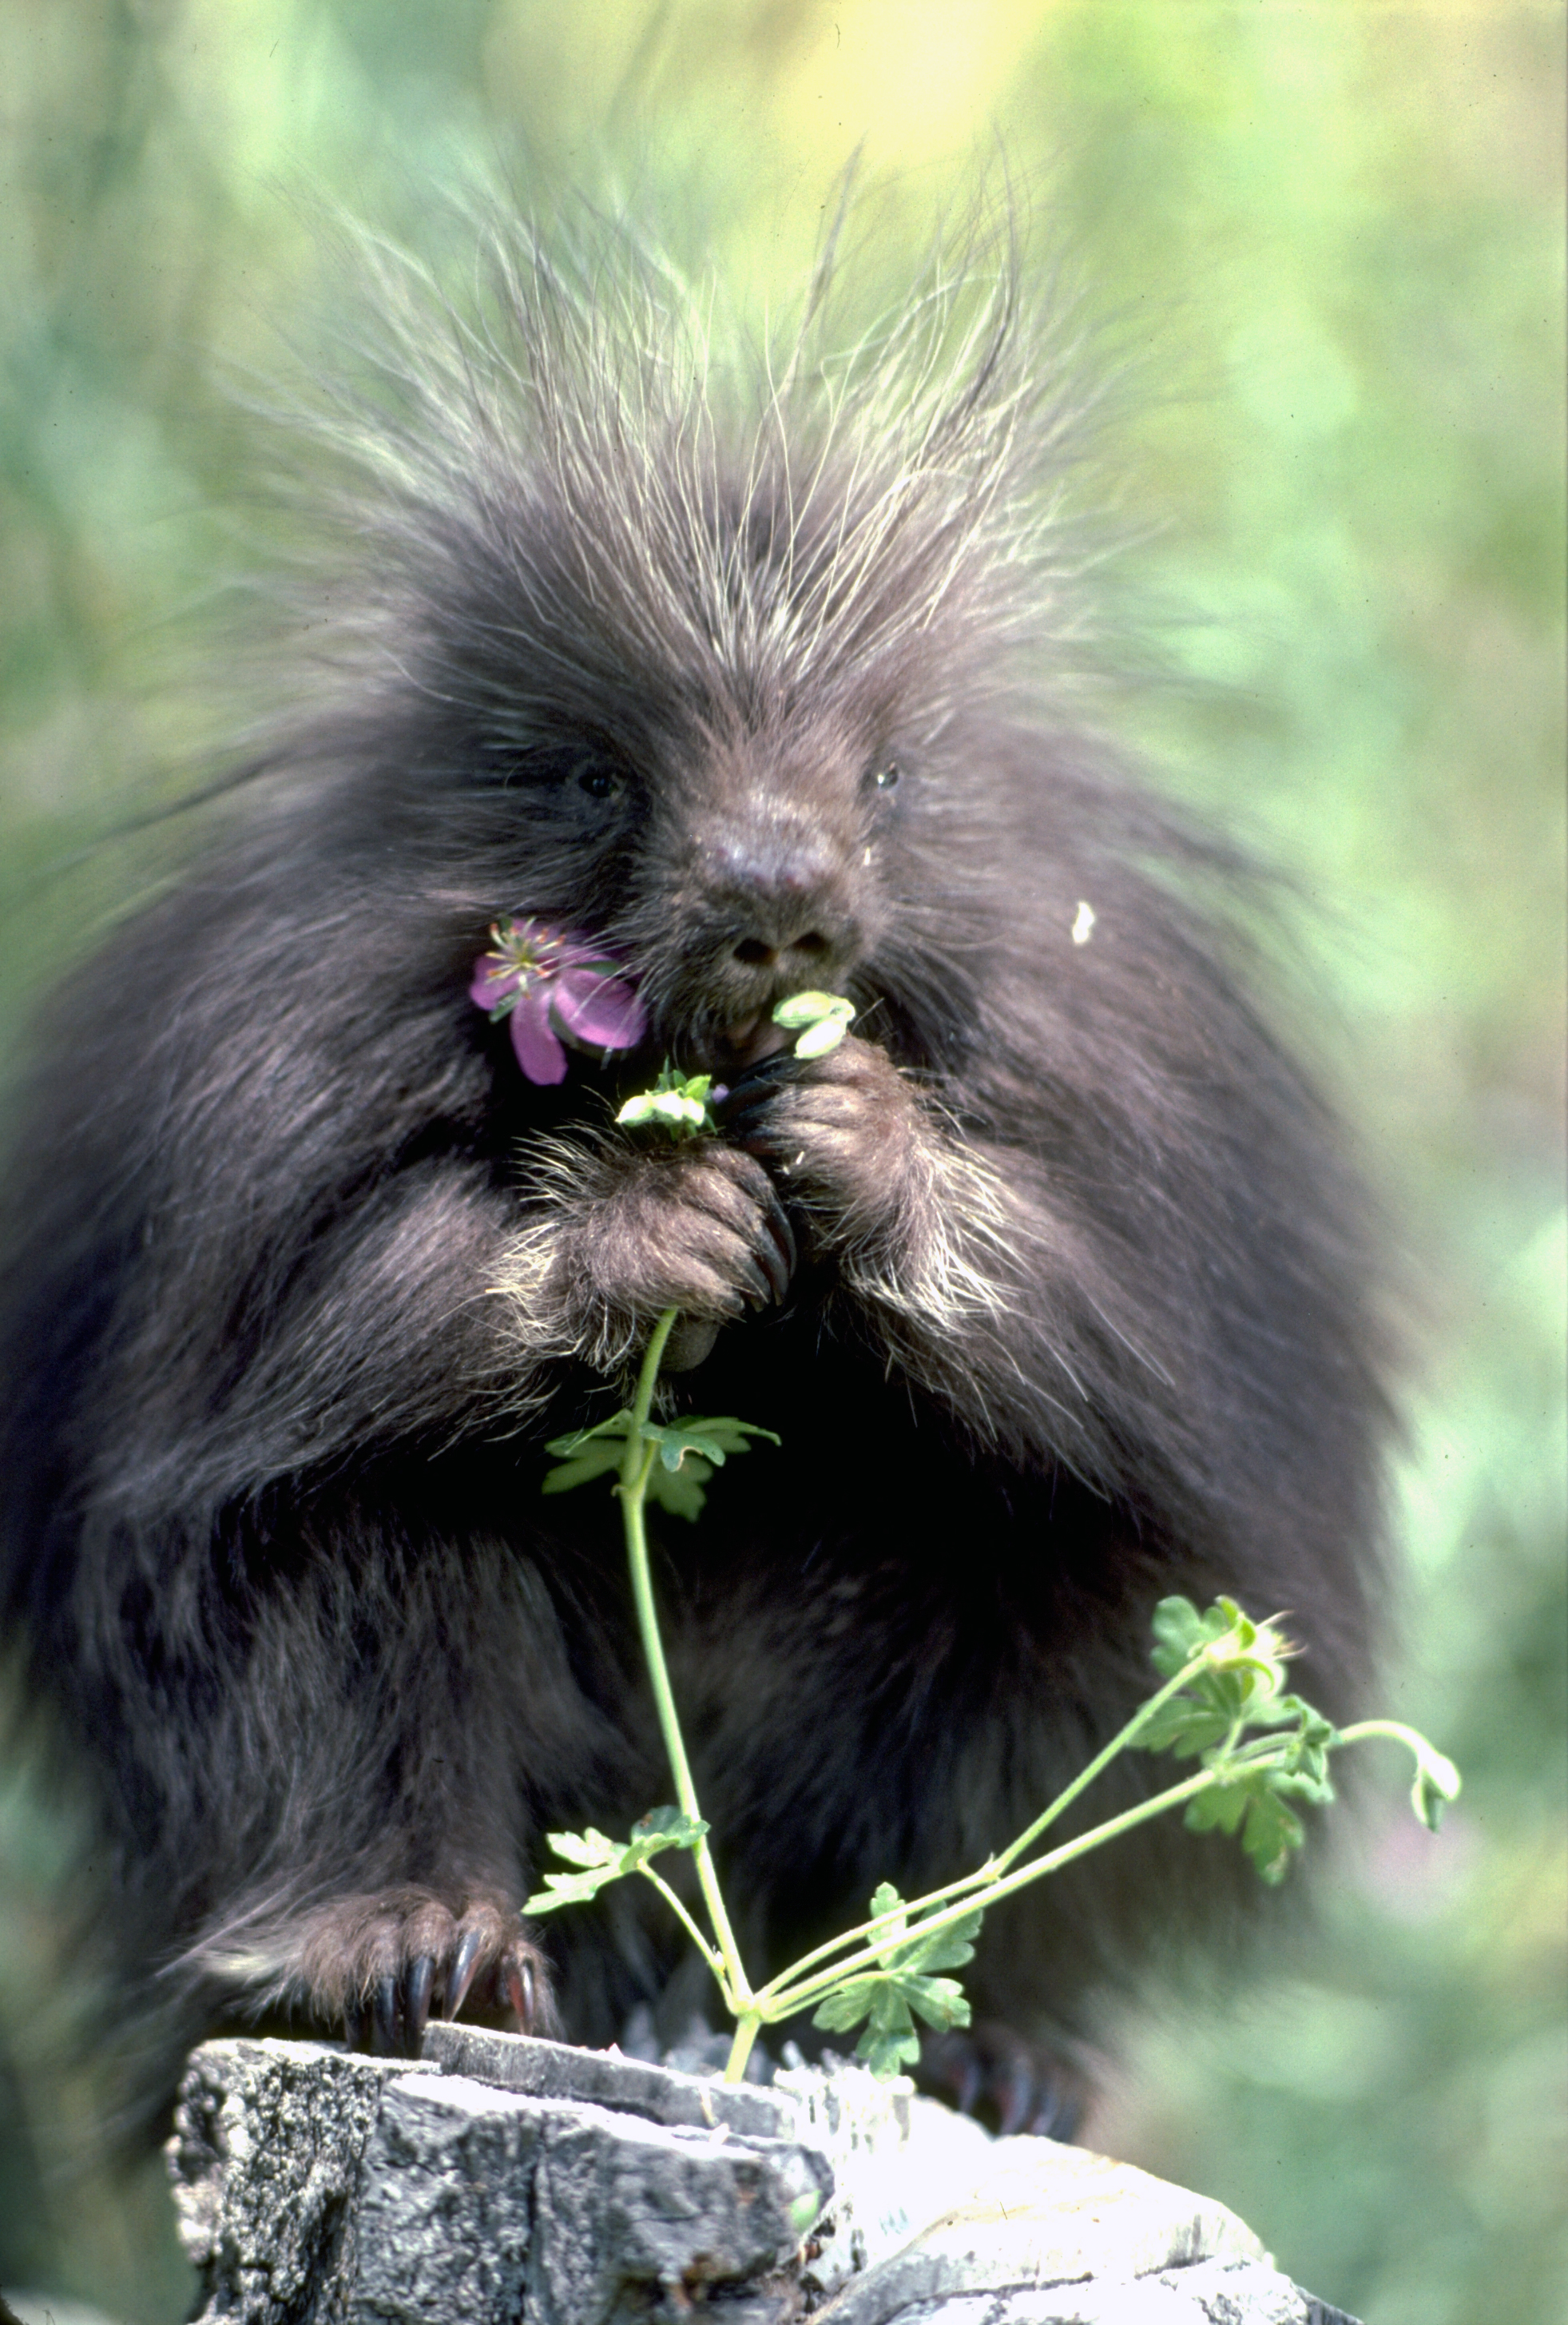 North American porcupine in Utah. Date not specified. | Photo by Lynn Chamberlain, Utah Division of Wildlife Resources, St. George News